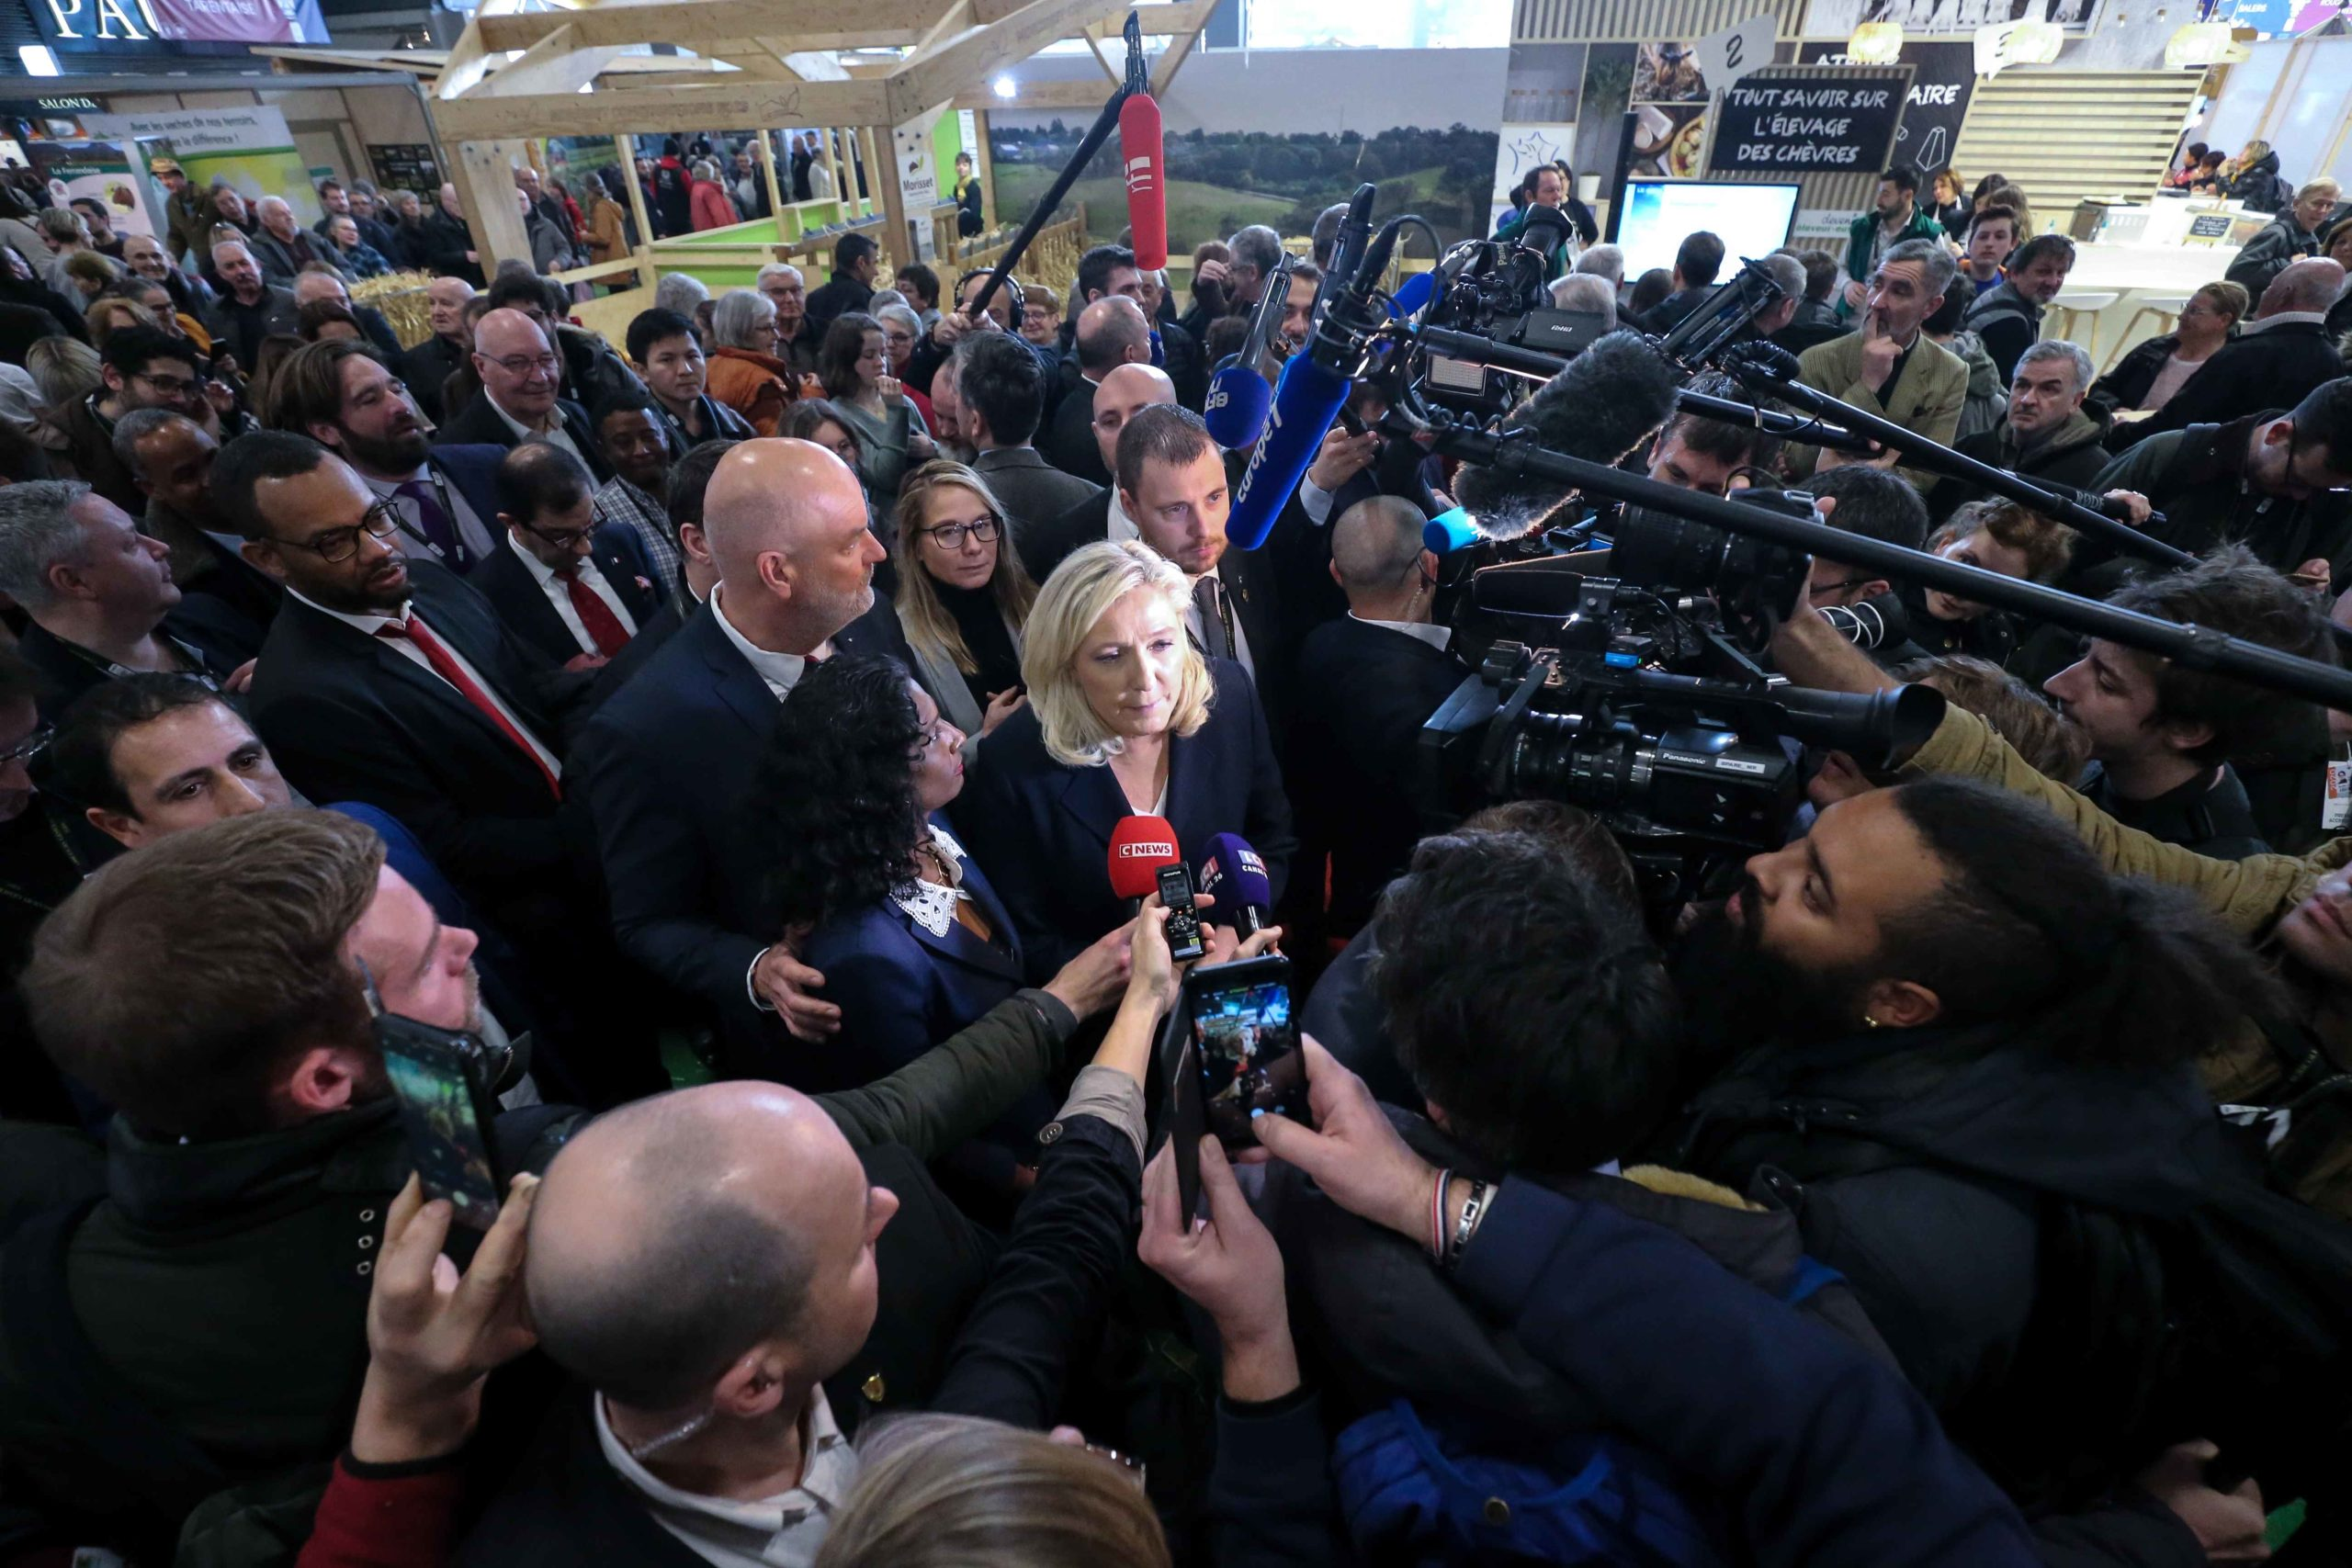 French member of Parliament and President of the far-right Rassemblement National (RN) party Marine Le Pen (C) visits the international Agriculture Fair in Paris with French far-right party Rassemblement National (RN) eurodeputies Maxette Pirbakas (C-L) on